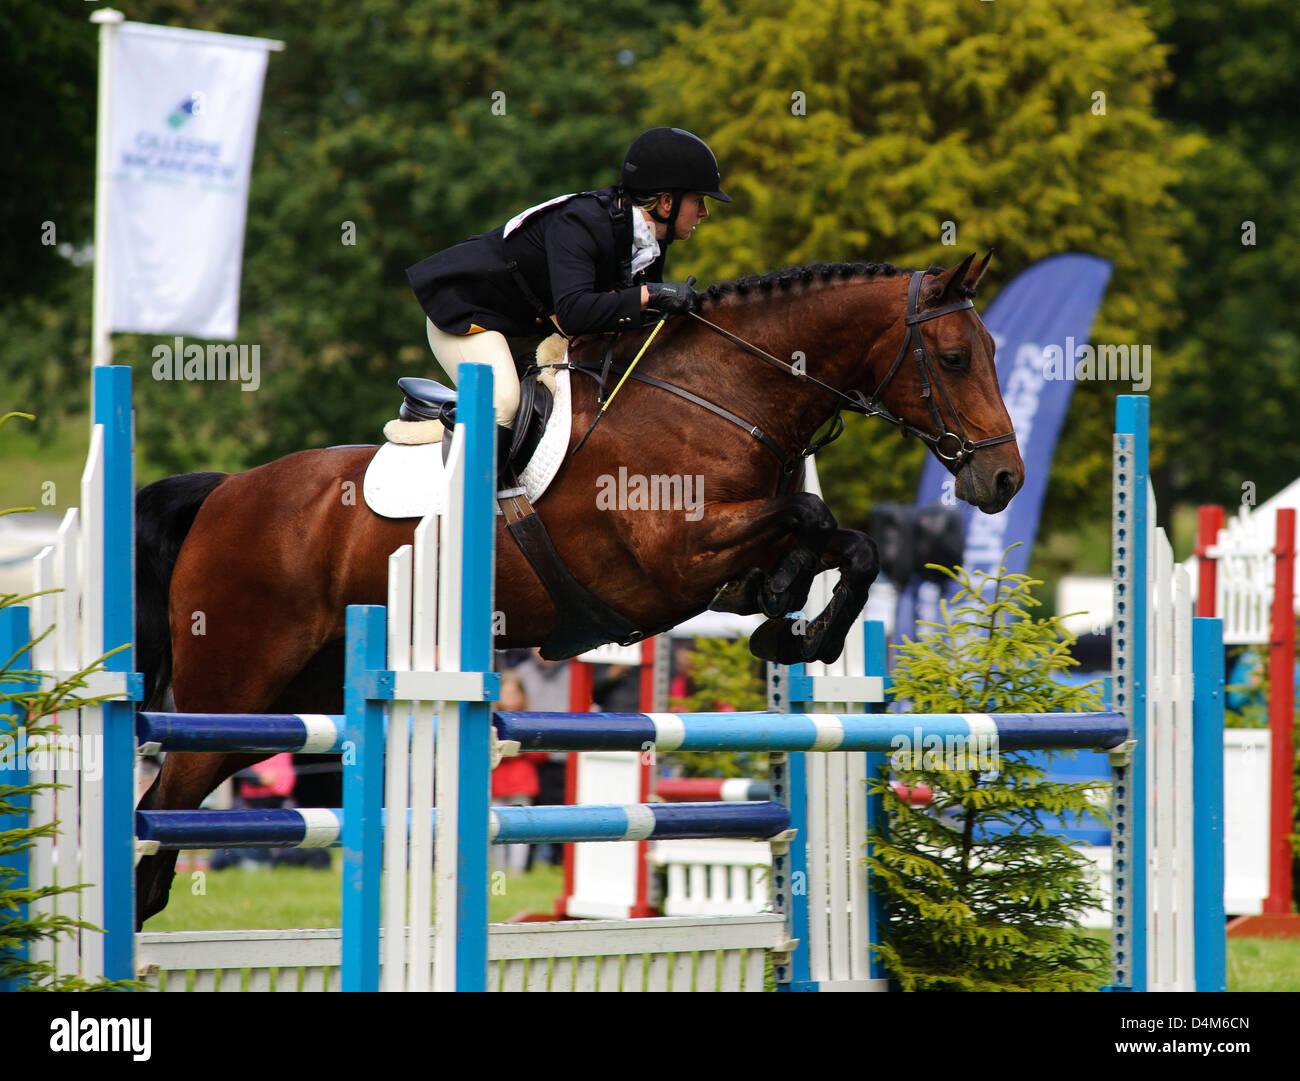 Ruth Foster in action, Gillespie Macandrew Hopetoun House Horse Trials - Stock Image